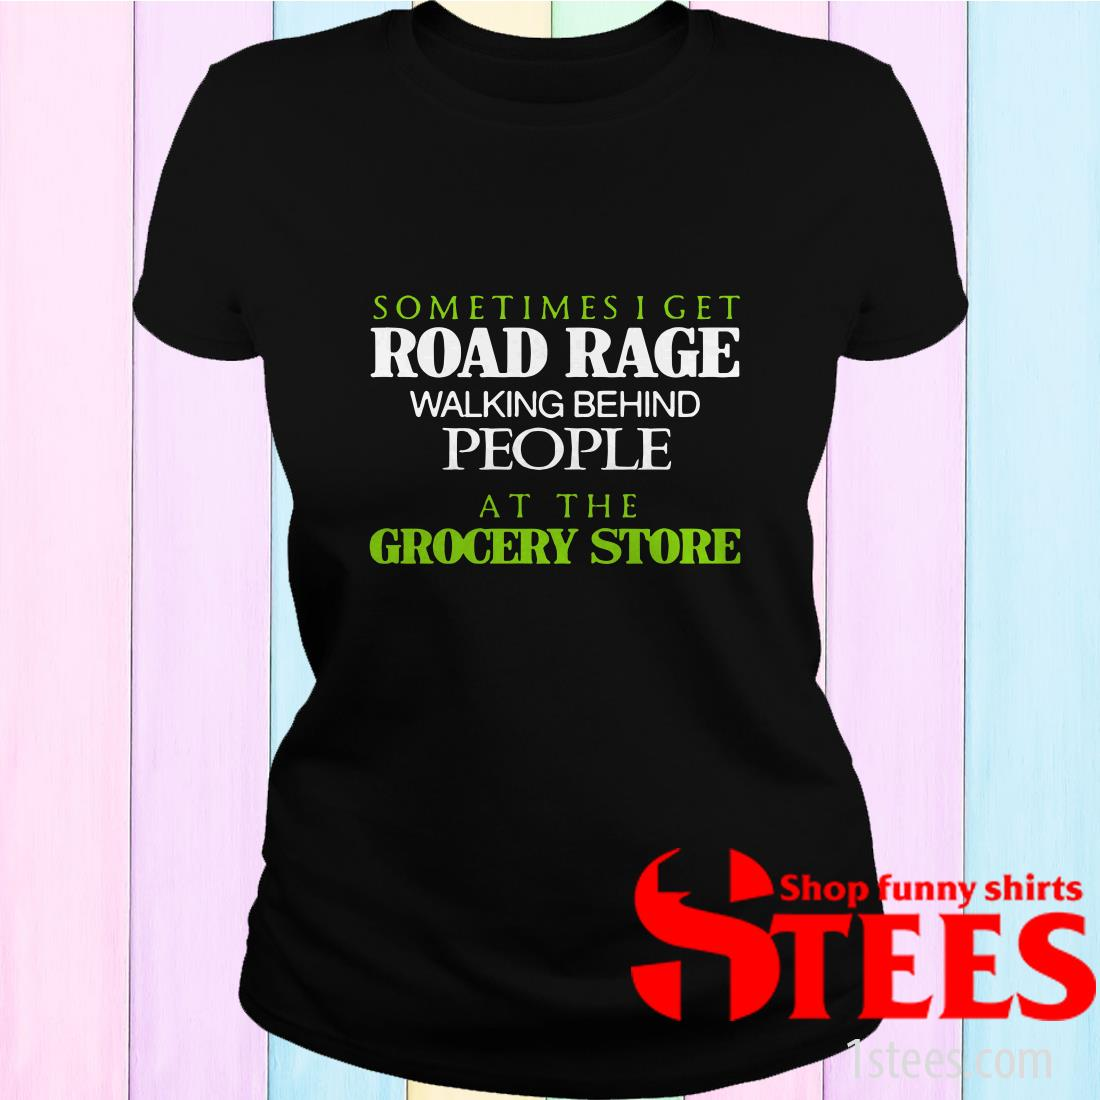 Sometimes I Get Road Rage Walking Behind People At The Grocery Store Shirt